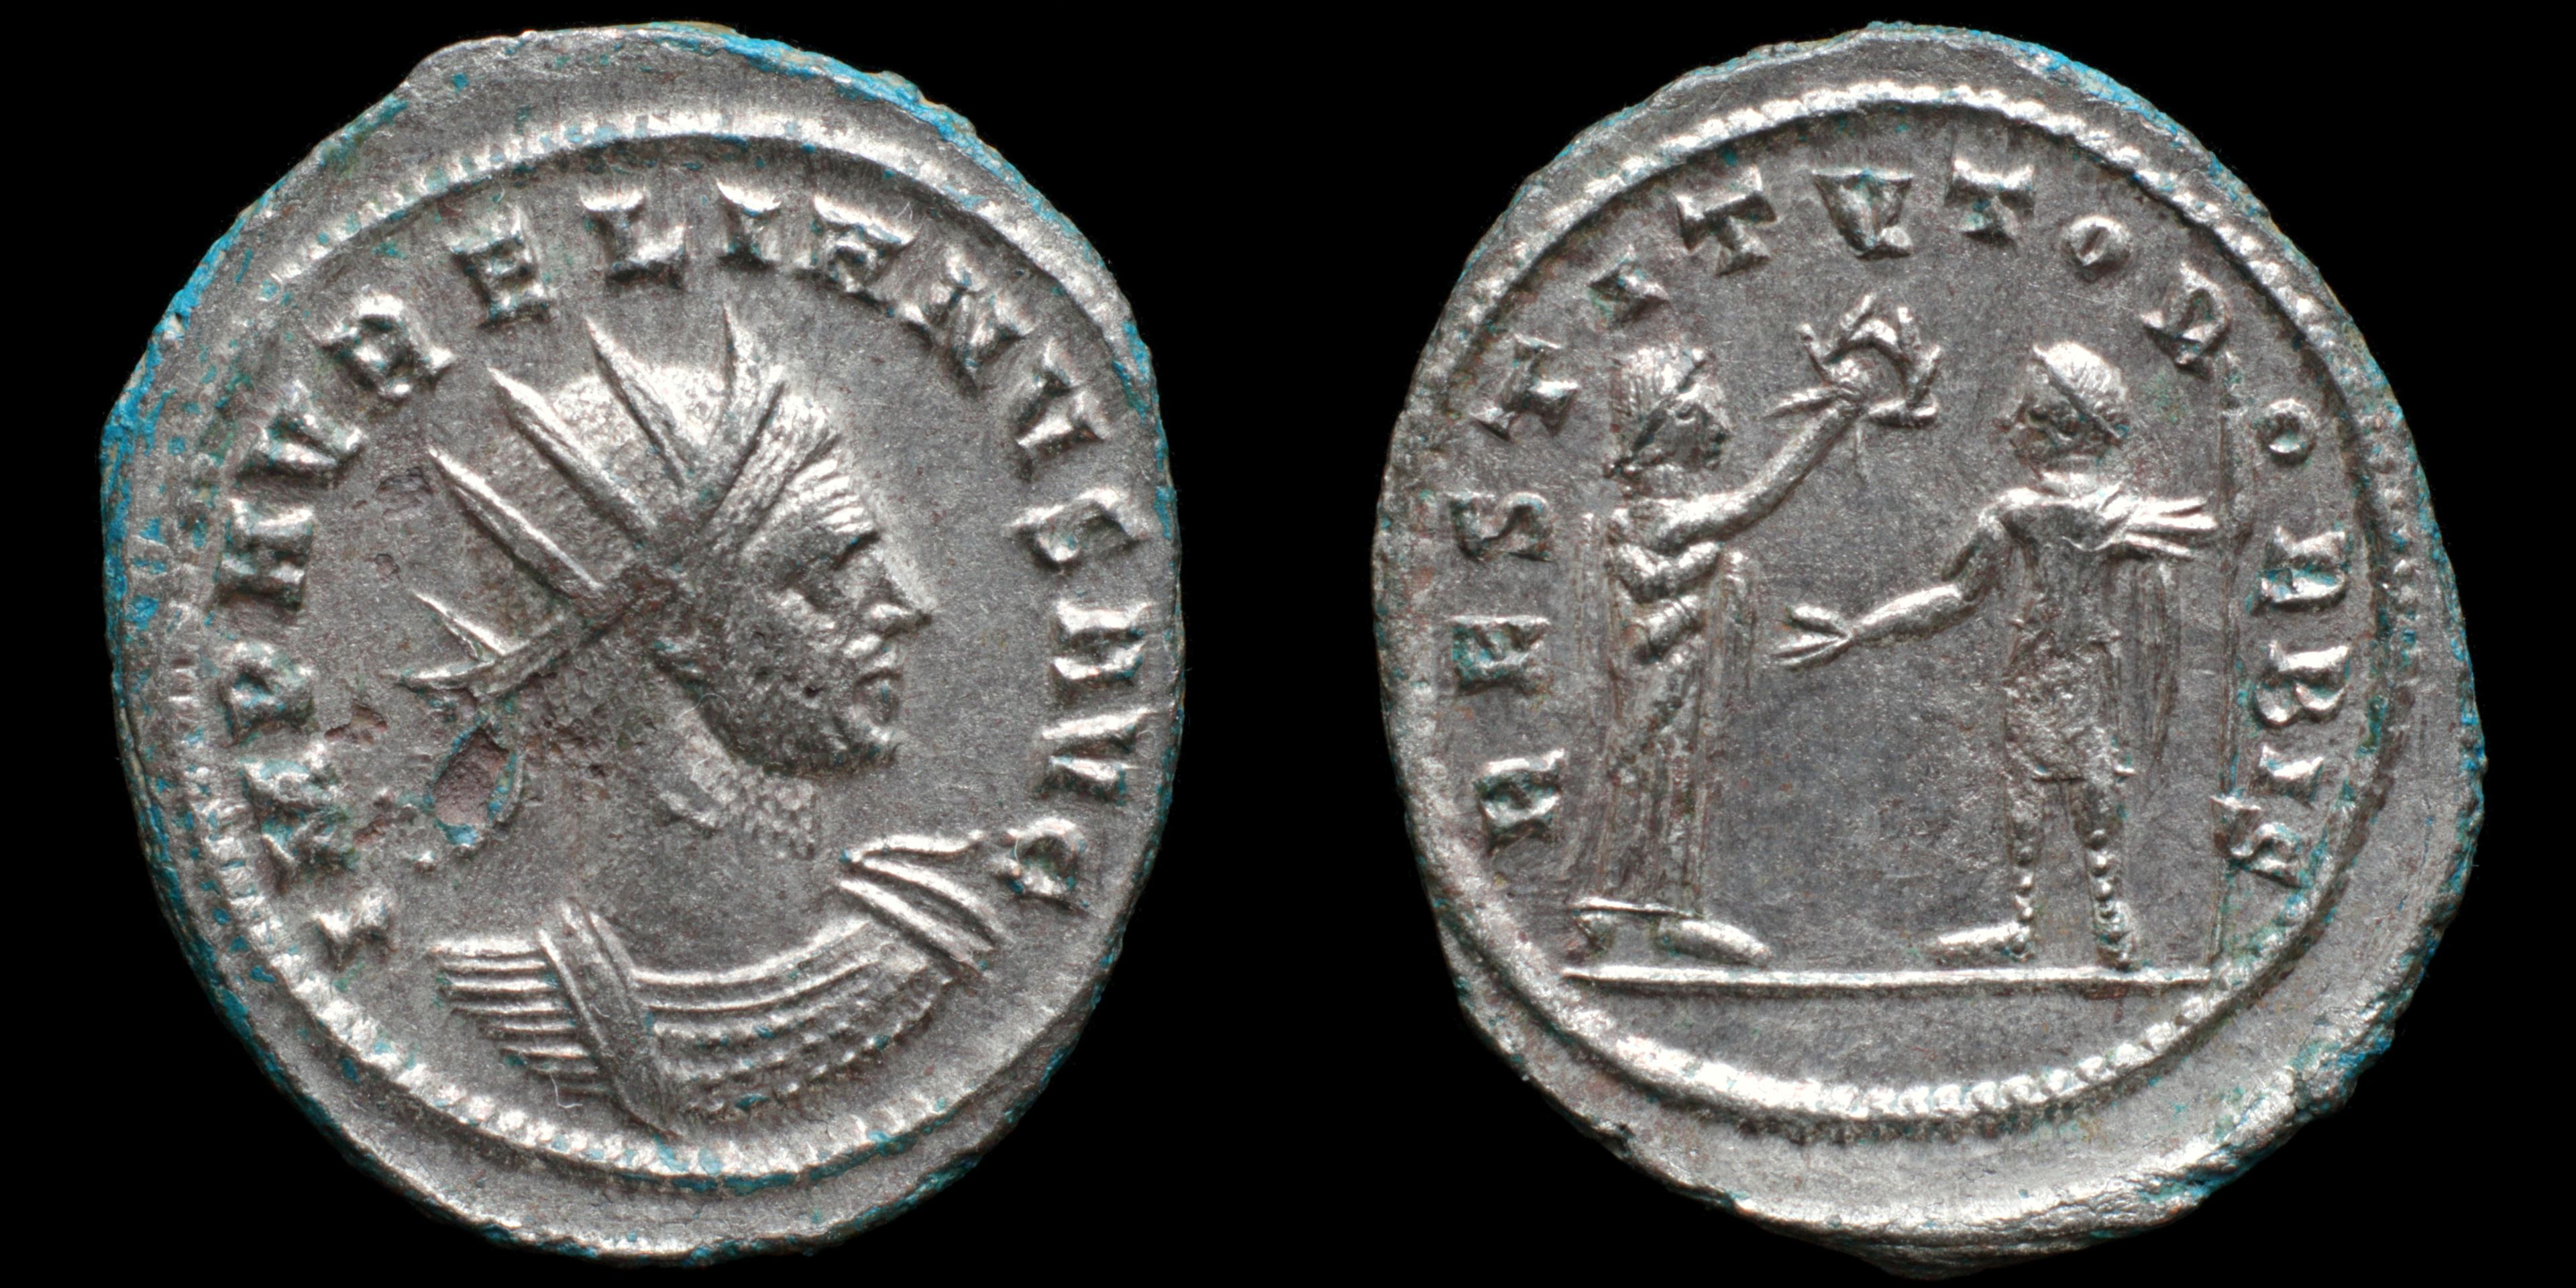 /Files/Images/Coinsite/CoinDB/1409_Aurelian_Cyzicus.jpg